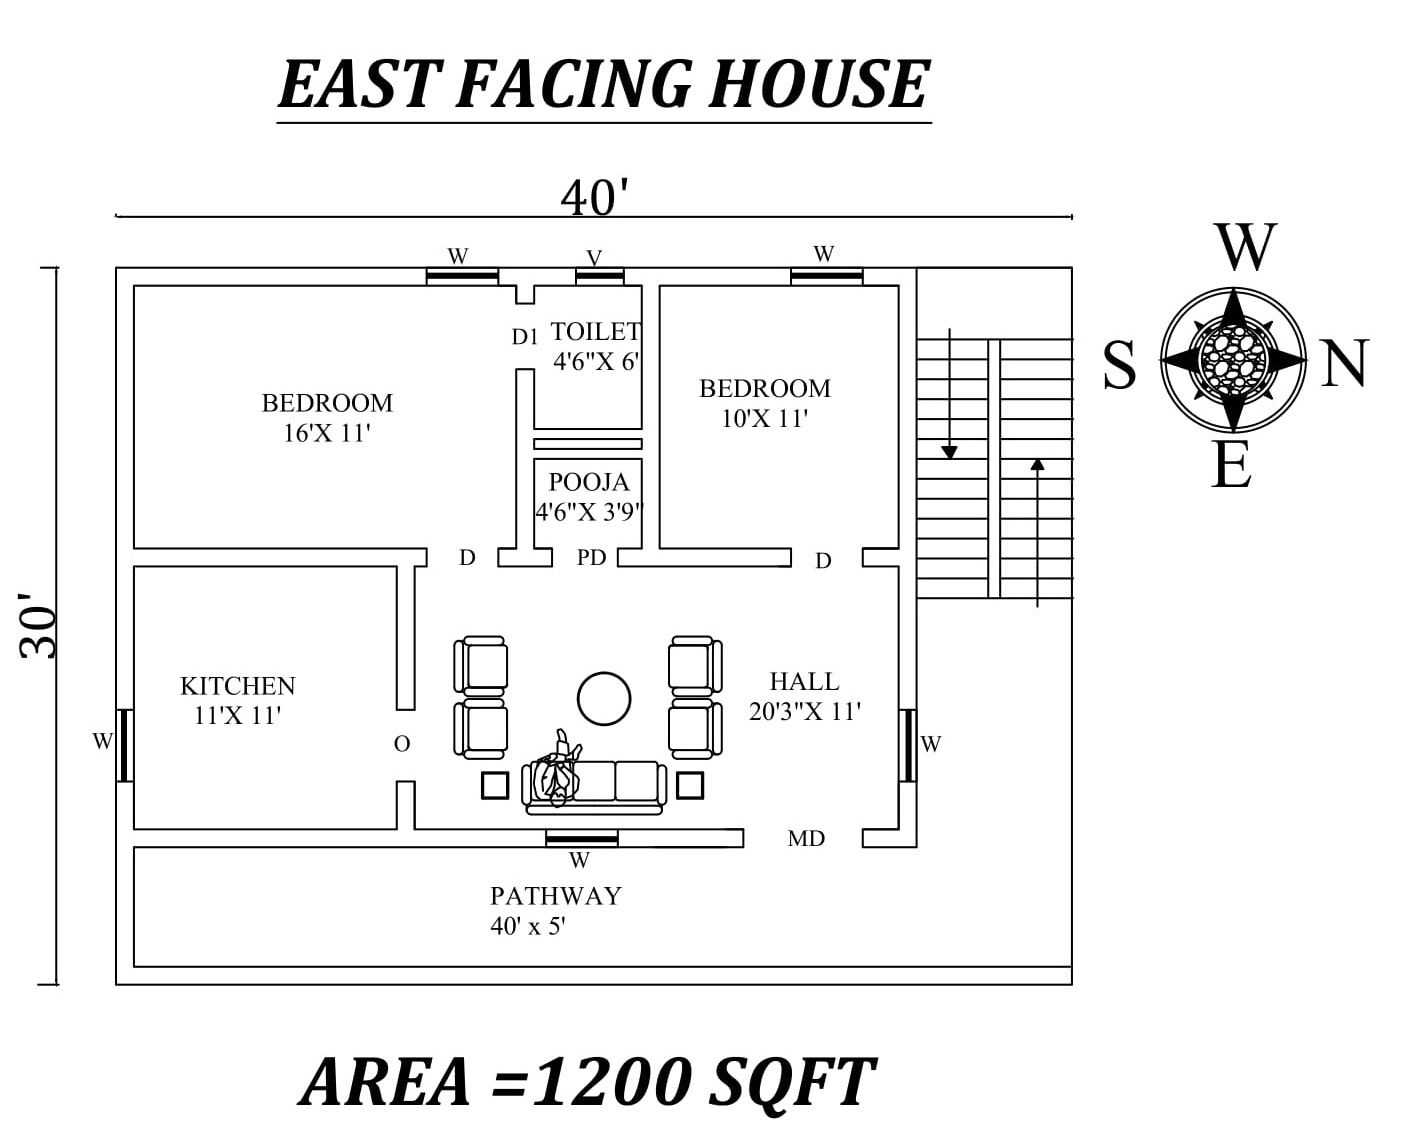 40 x30 The Perfect 2bhk East facing House Plan As Per Vastu Shastra Autocad dwg file details